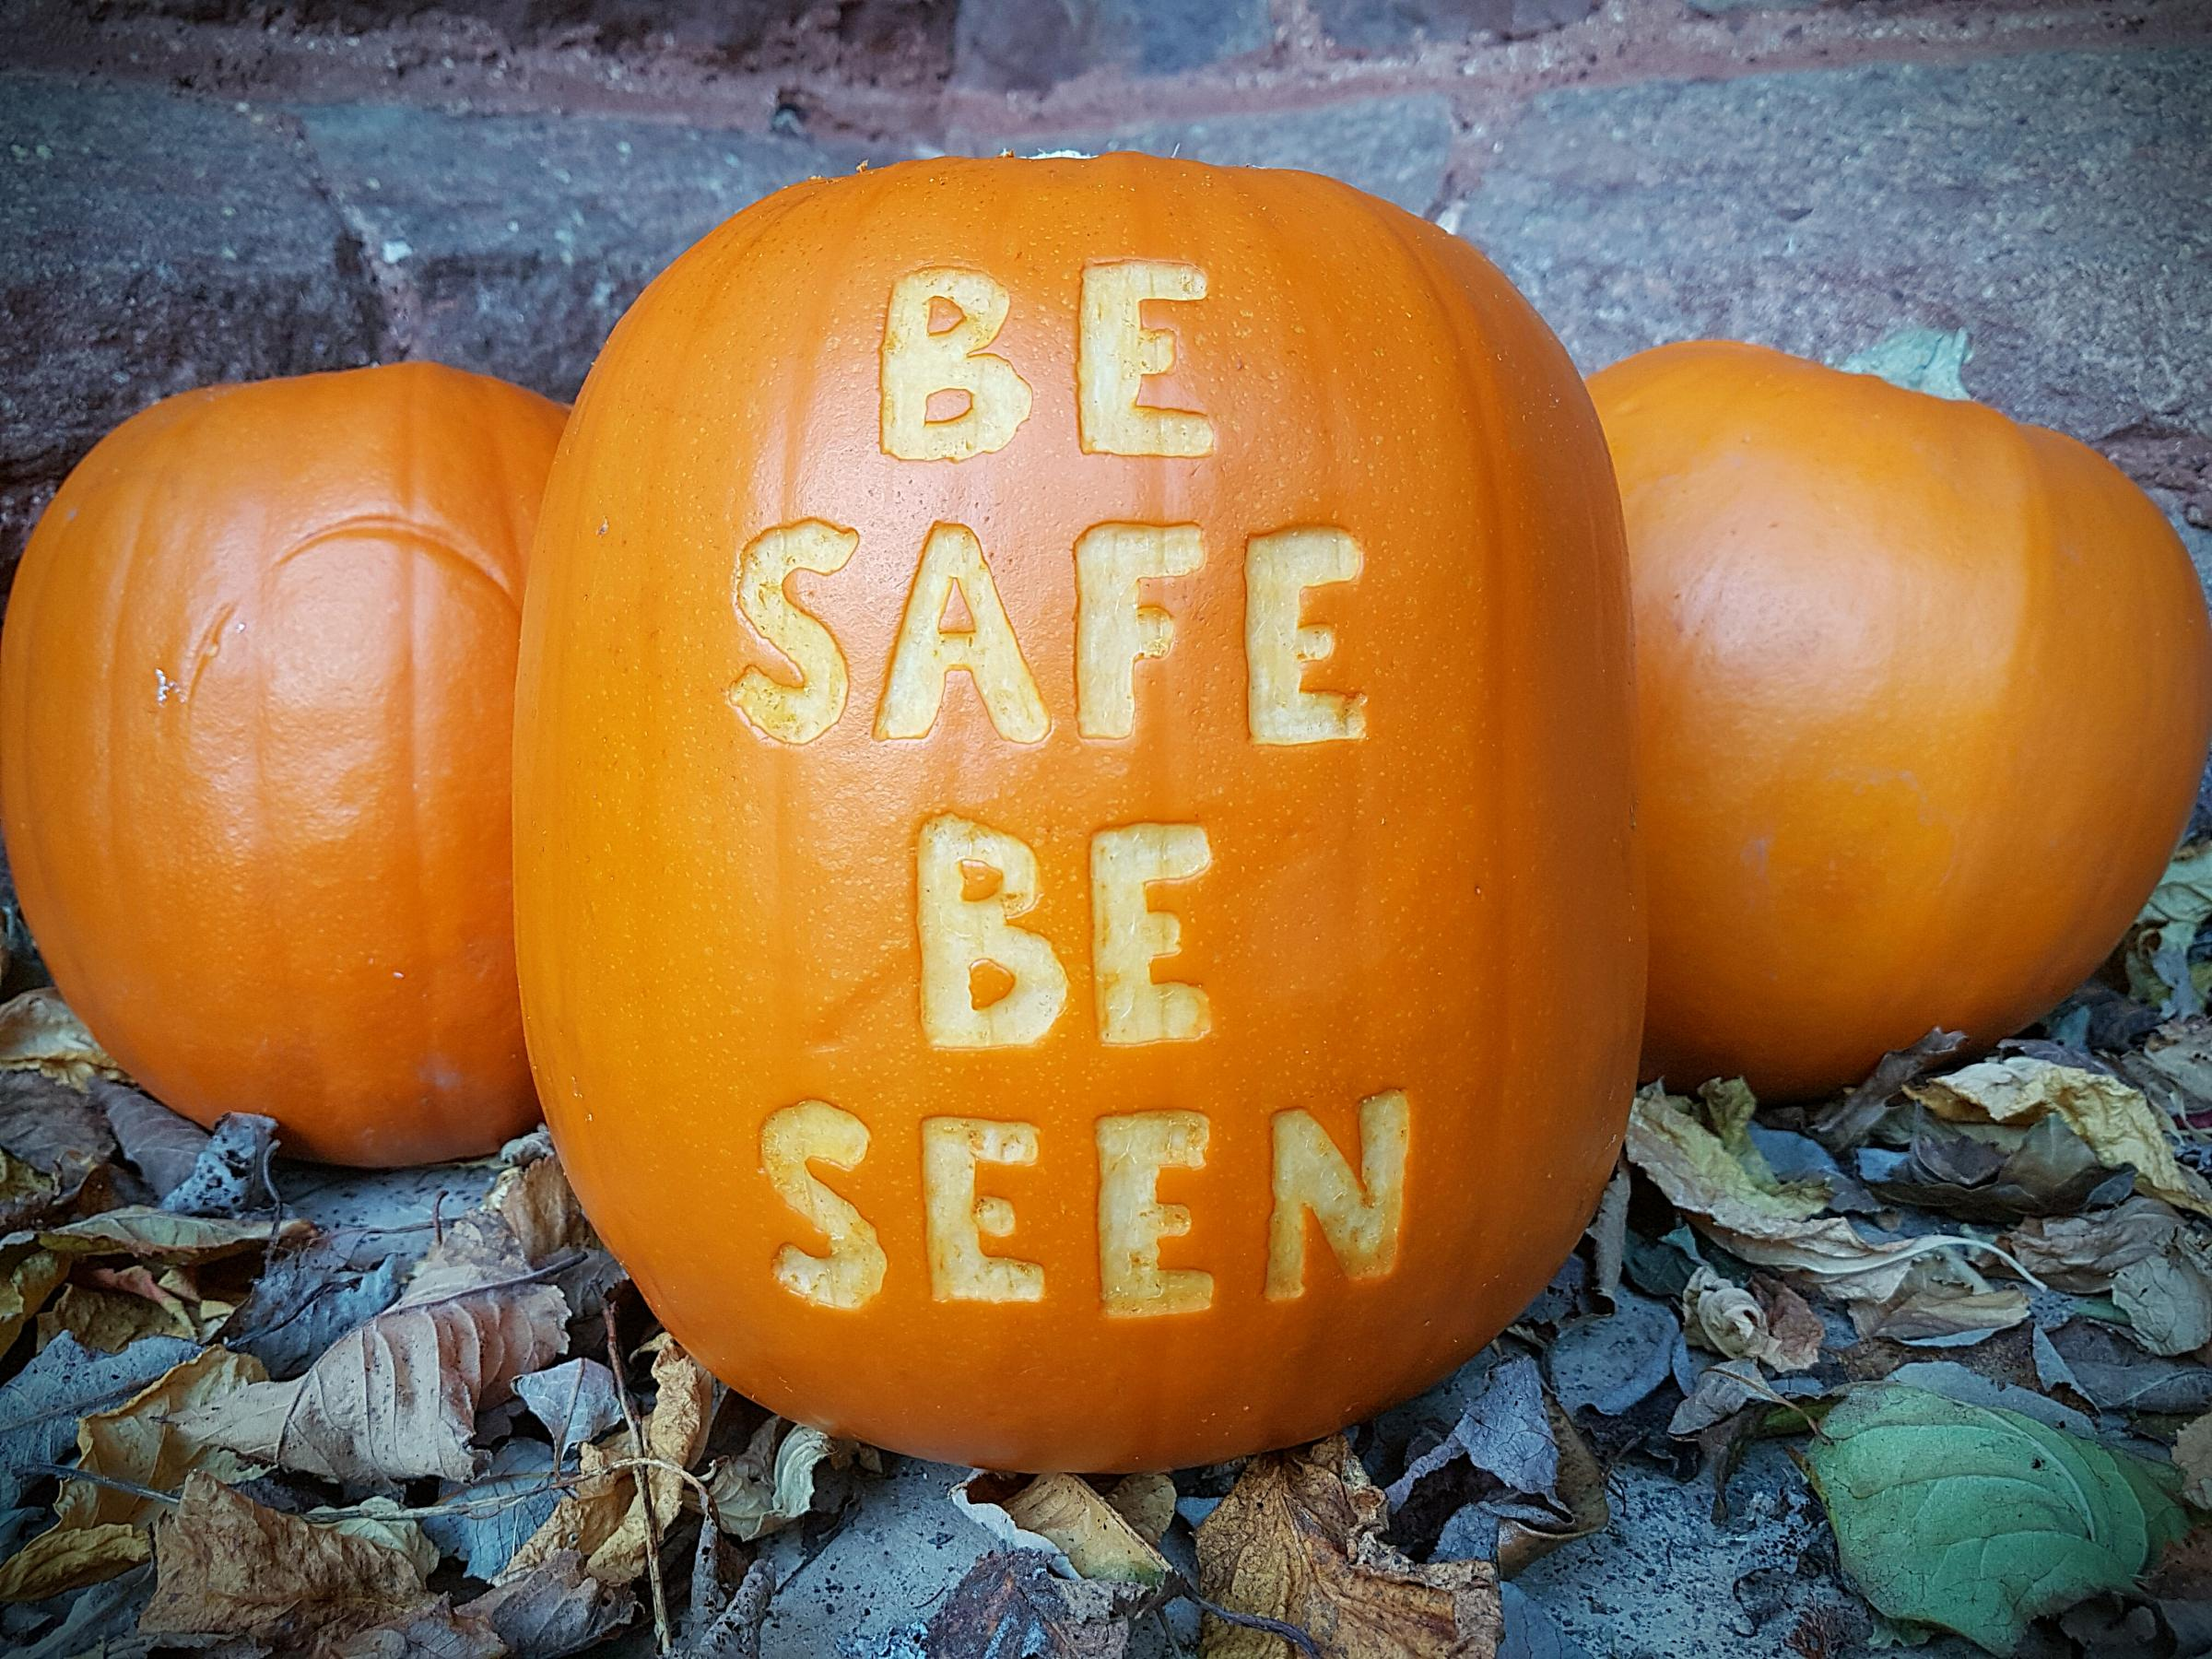 STAY SAFE: Be safe and be seen t Hallowe'en